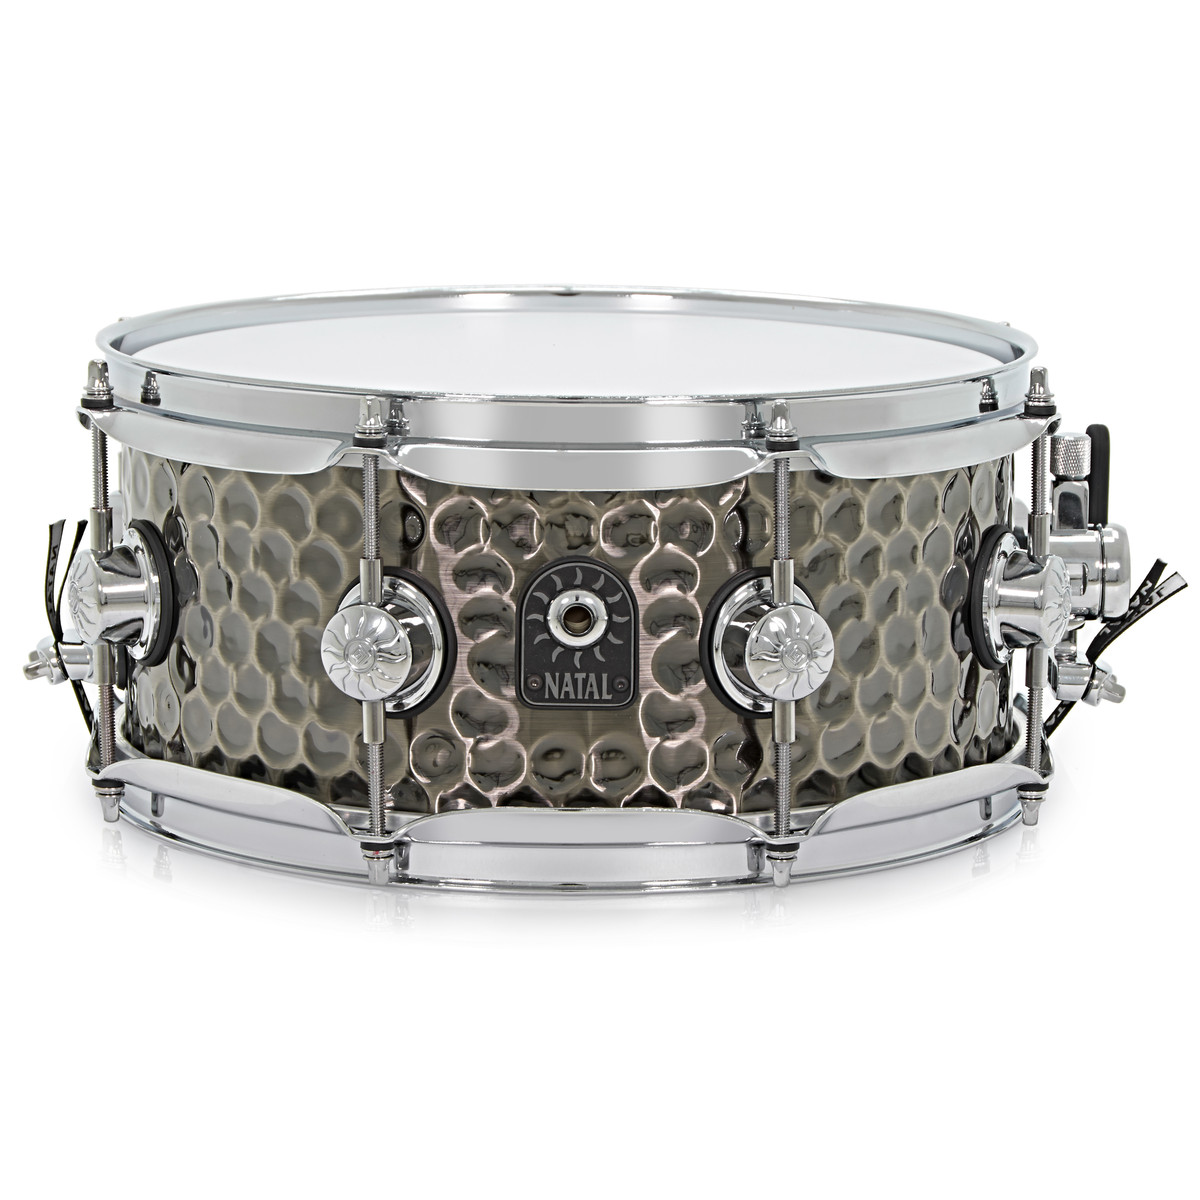 disc natal 12 39 39 x 5 5 39 39 hand hammered snare drum nickel at gear4music. Black Bedroom Furniture Sets. Home Design Ideas